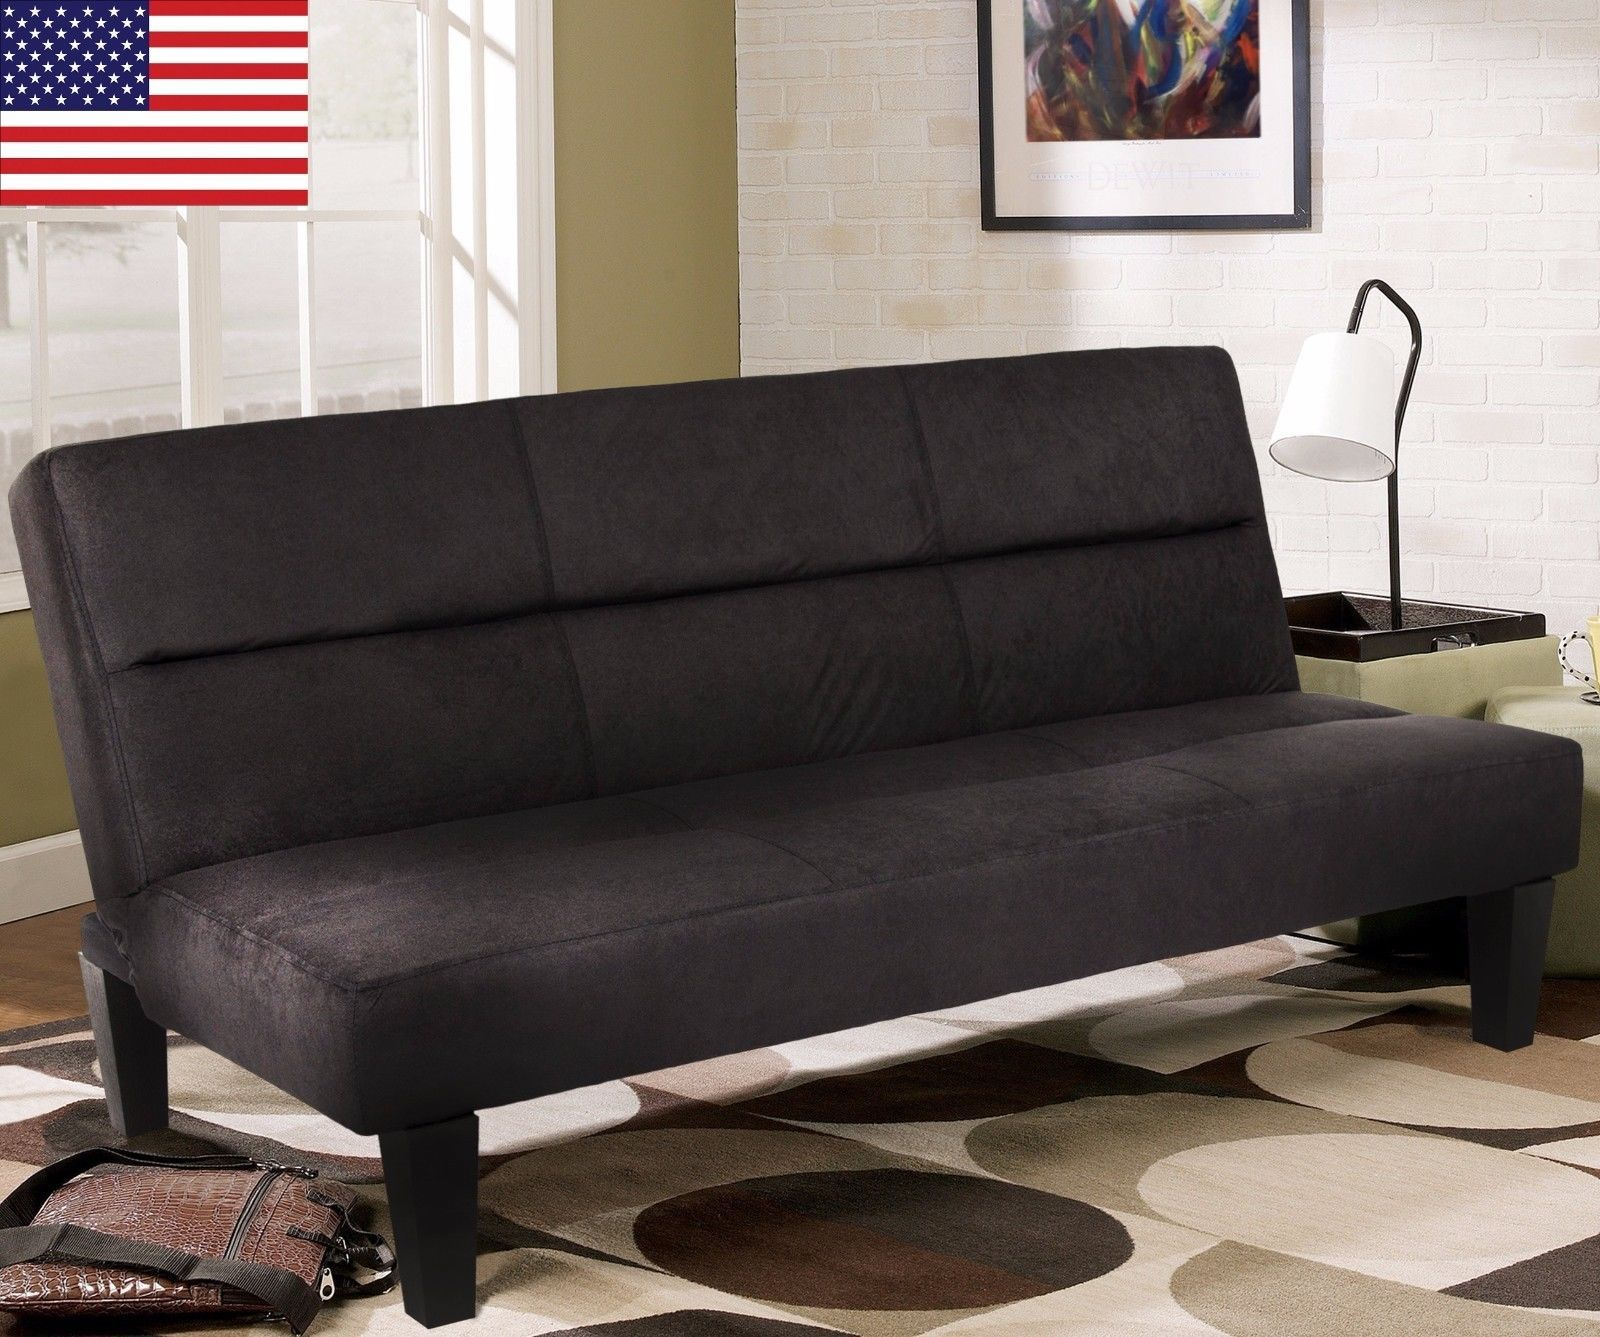 Sofa couch bed convertible futon black folding lounger for Sofa bed heaven